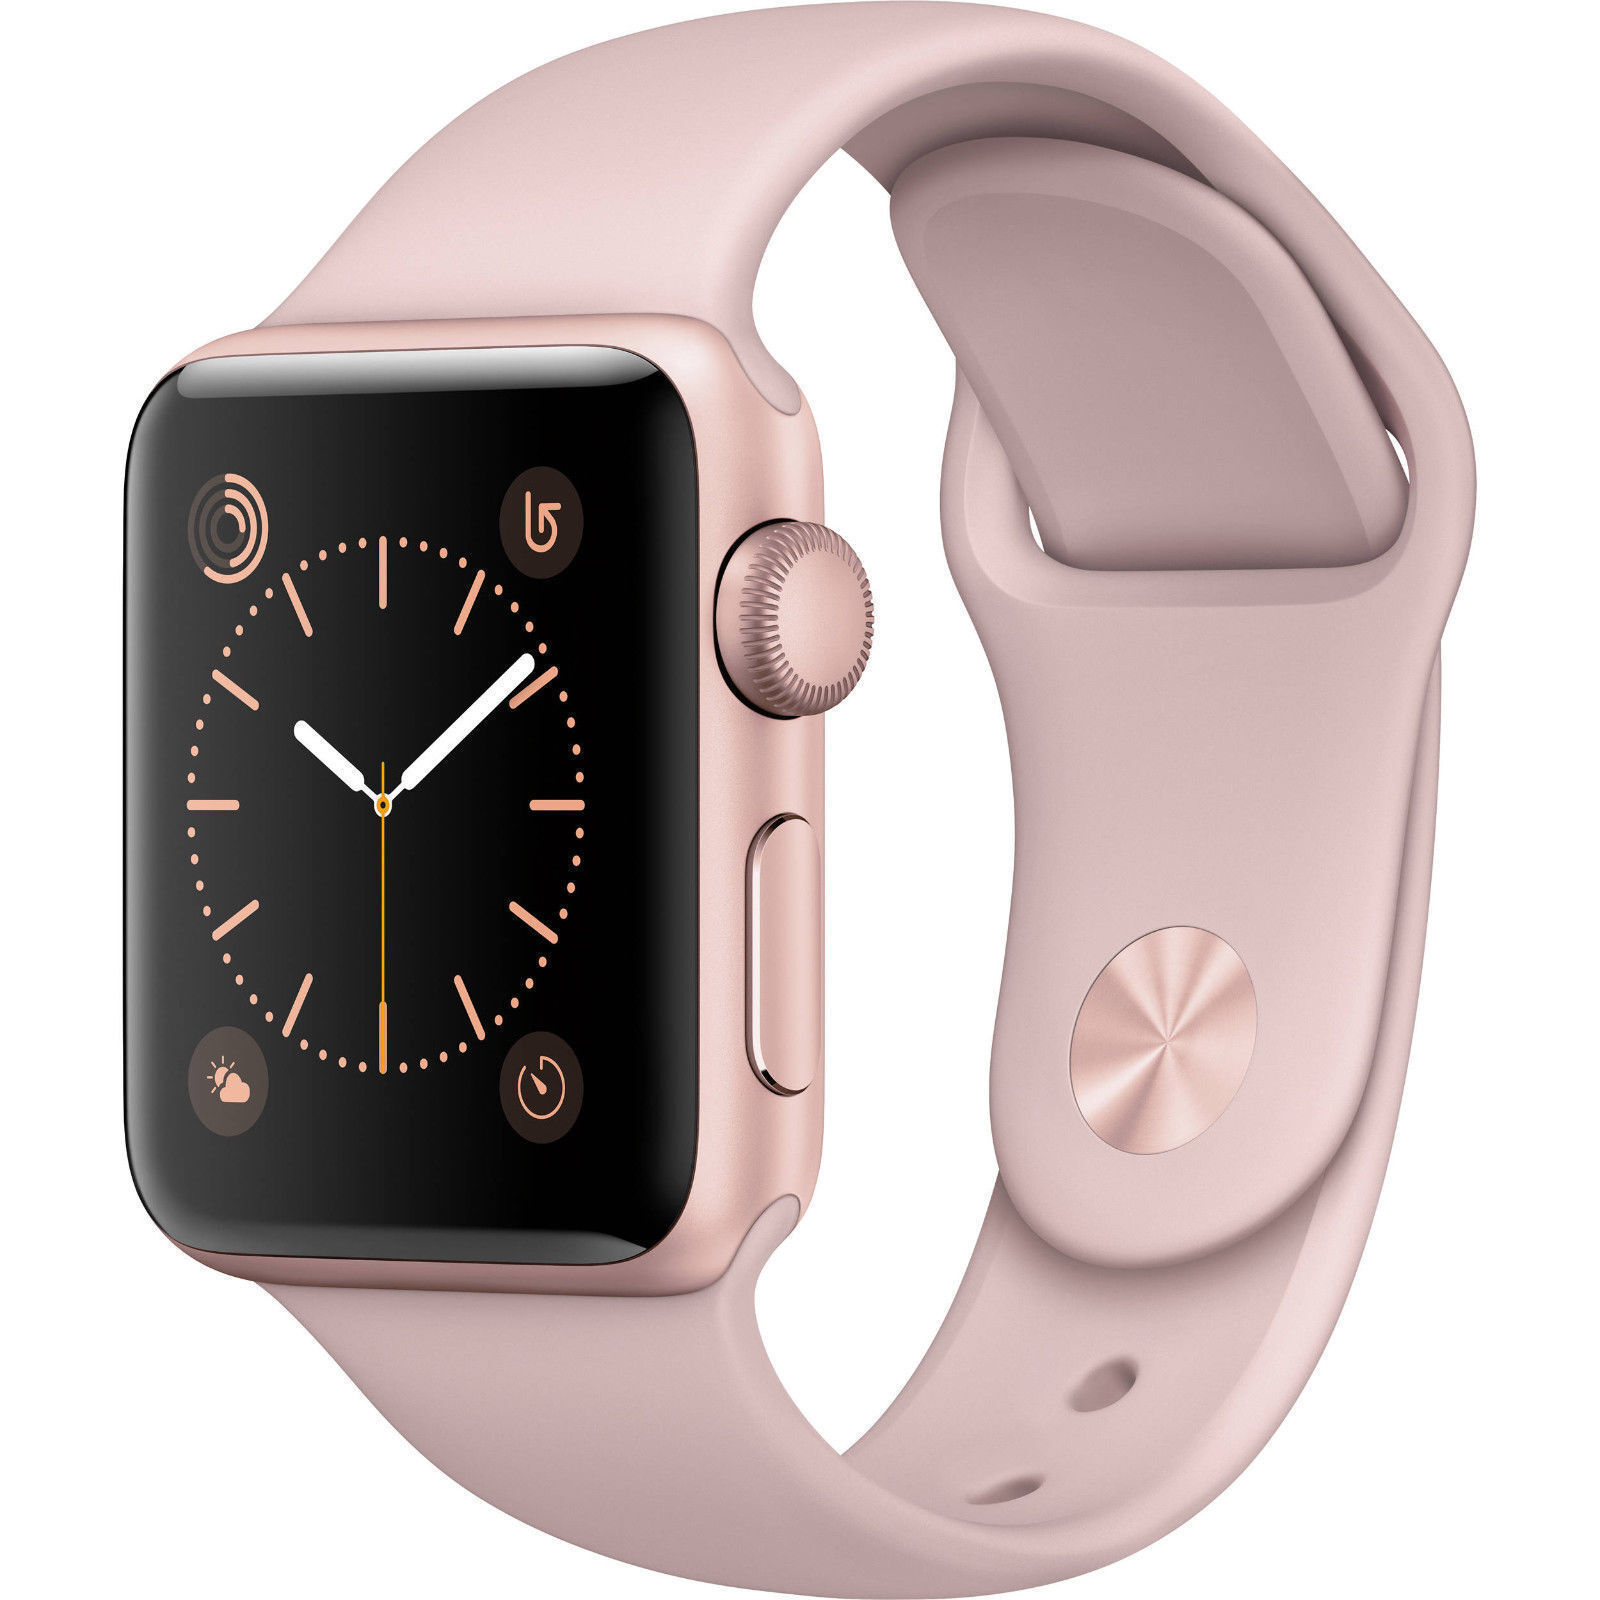 Apple Watch Series 2 38mm Rose Gold Aluminum Case Pink Sport Band MNNY2LL/A